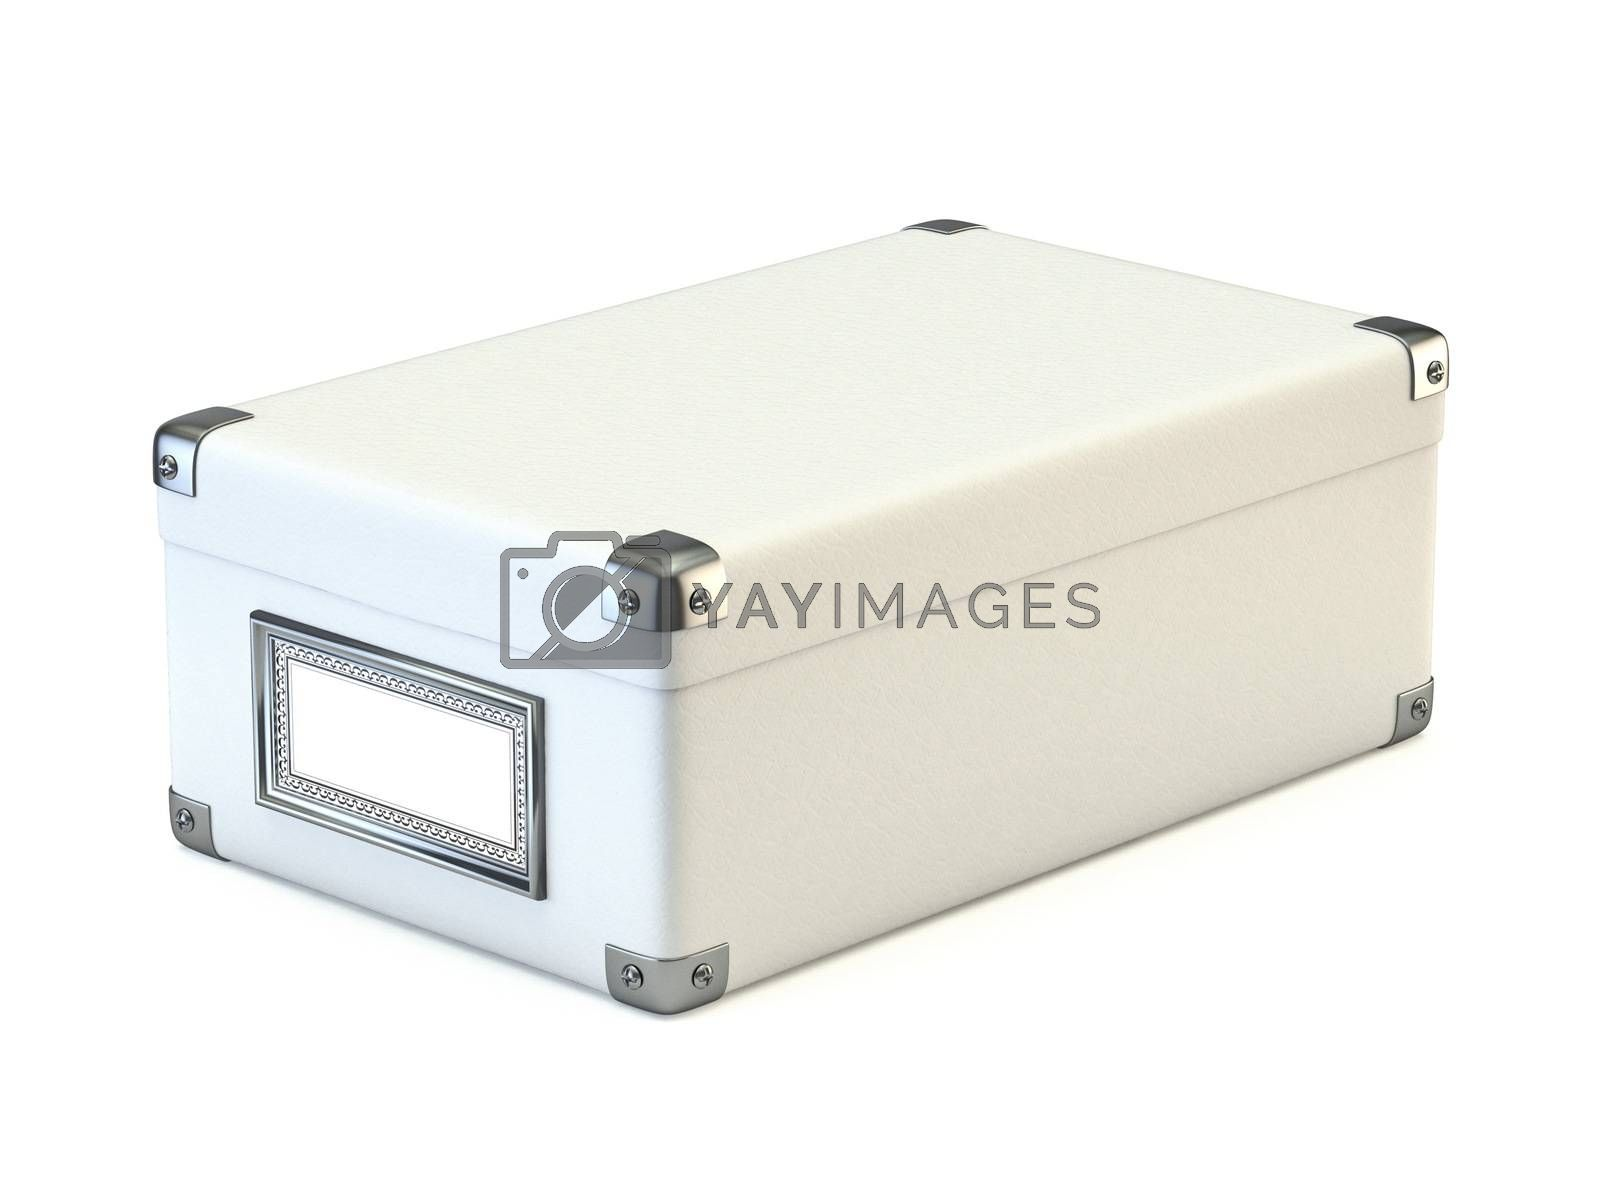 White box with metal corners 3D render illustration isolated on white background